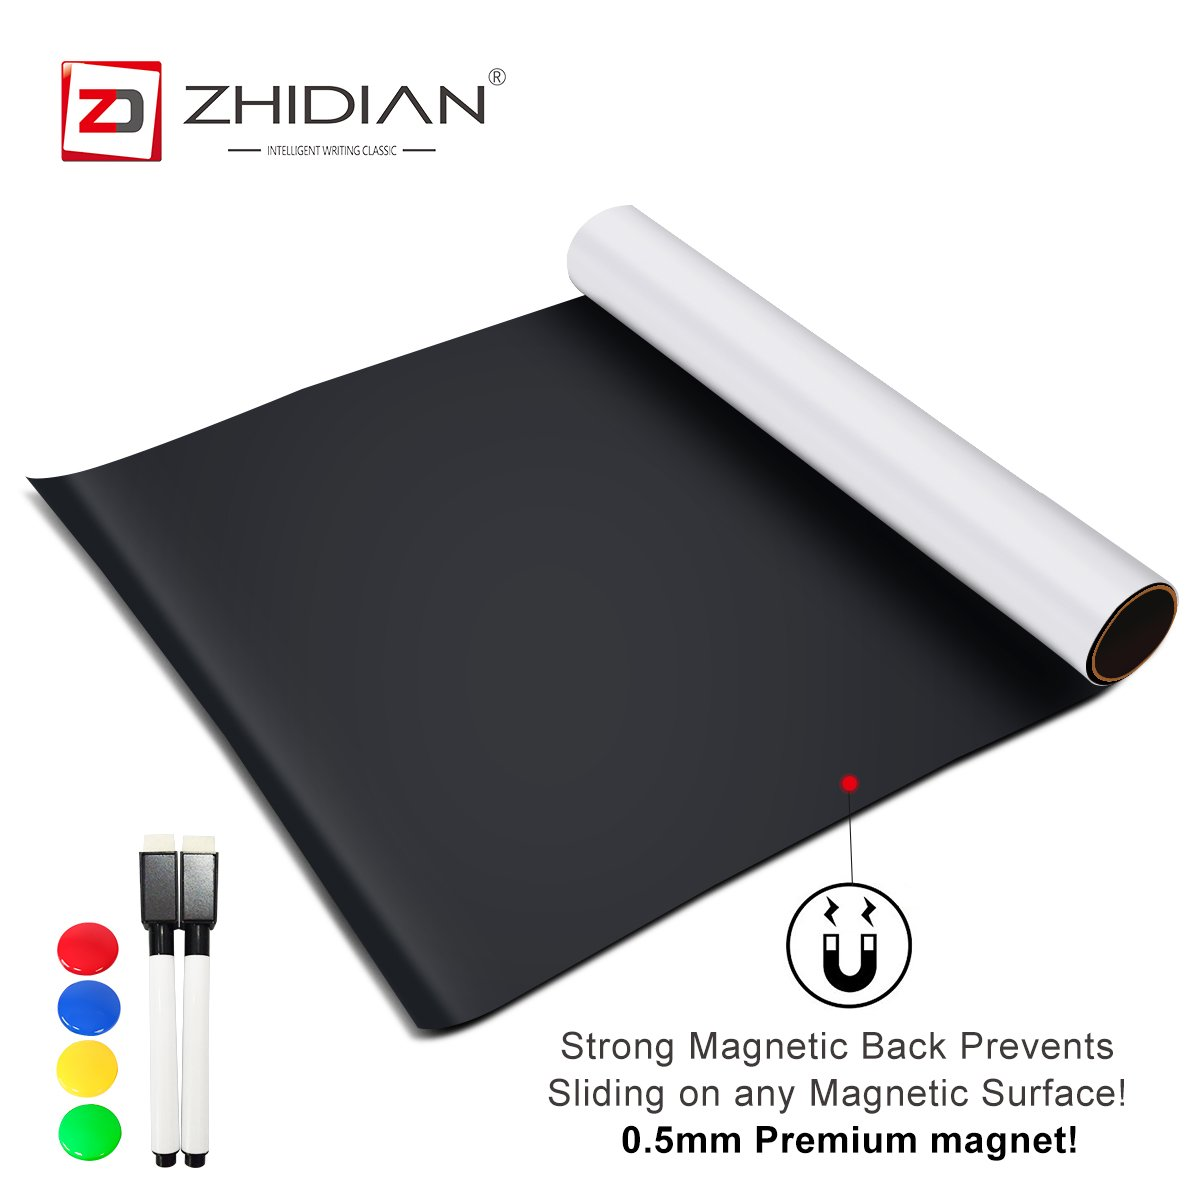 ZHIDIAN Magnetic White Boards Dry Erase Boards Wall Stickers 36×48 Inches There are Adhesive on The Backs Easy to Install